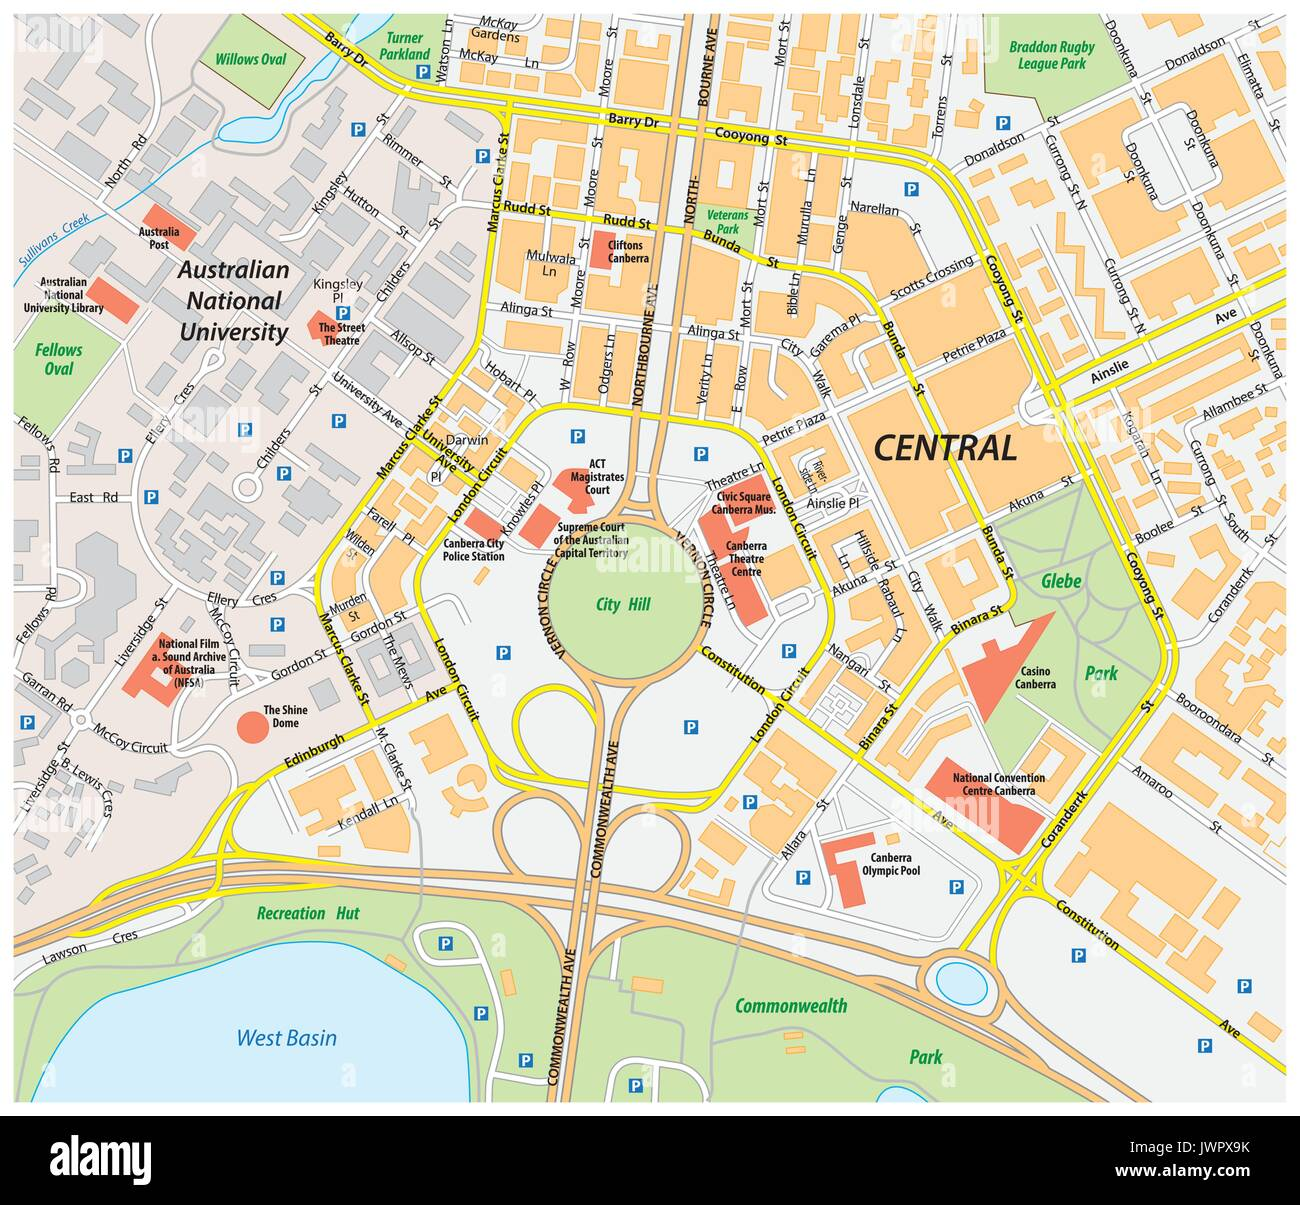 vector road map of central canberra australia